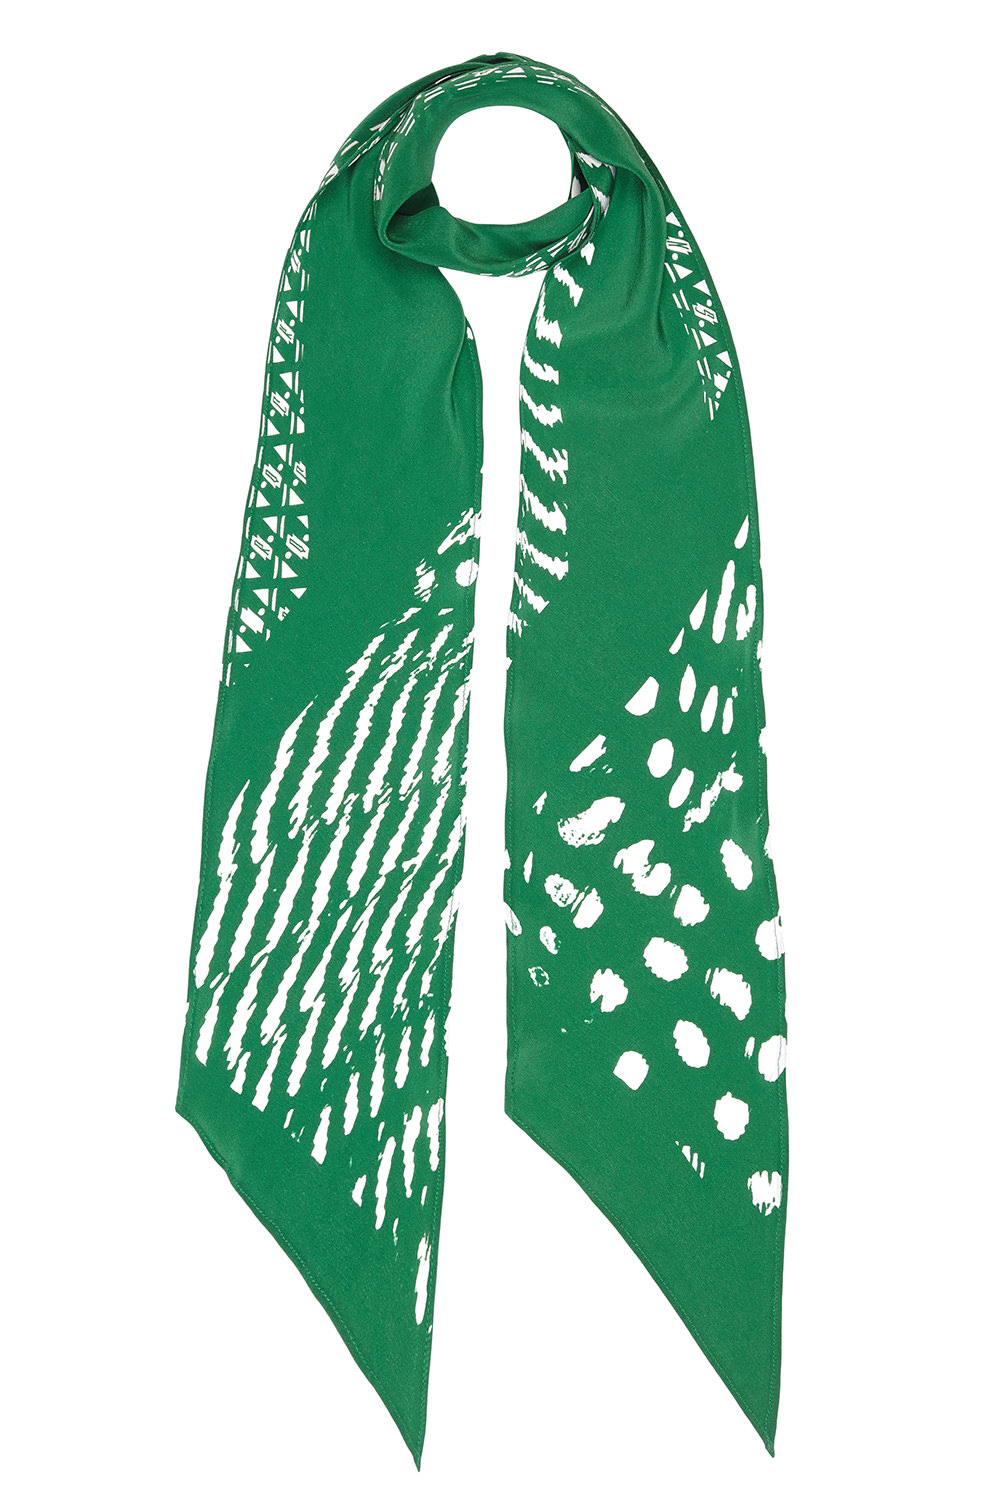 ROCKING Guinea Blow Up Classic Skinny Scarf (Green)